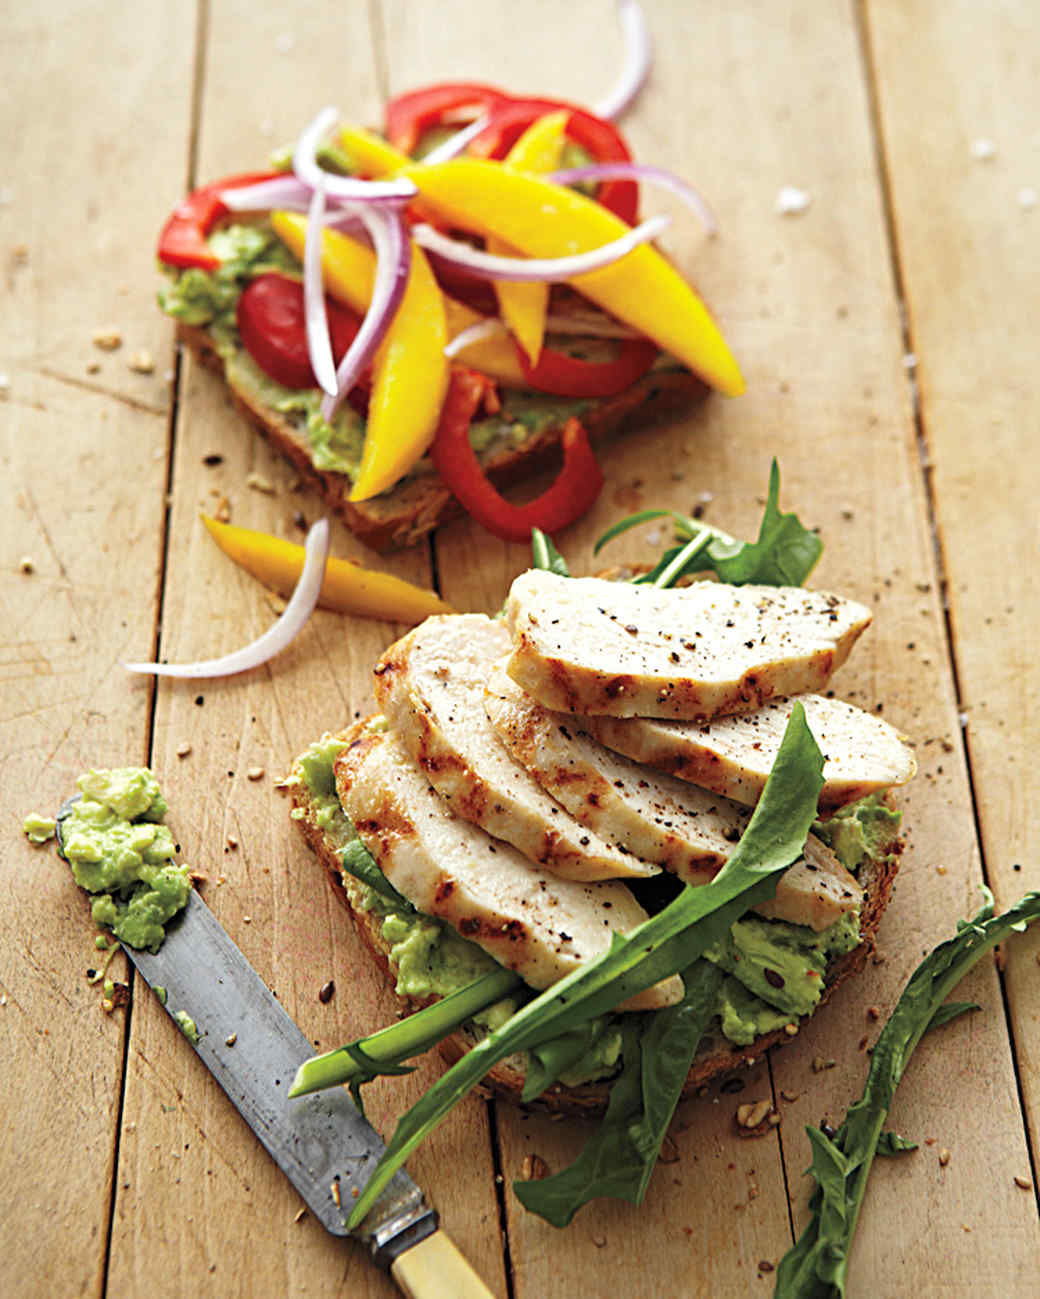 Grilled Chicken with Mango, Bell Pepper, and Avocado